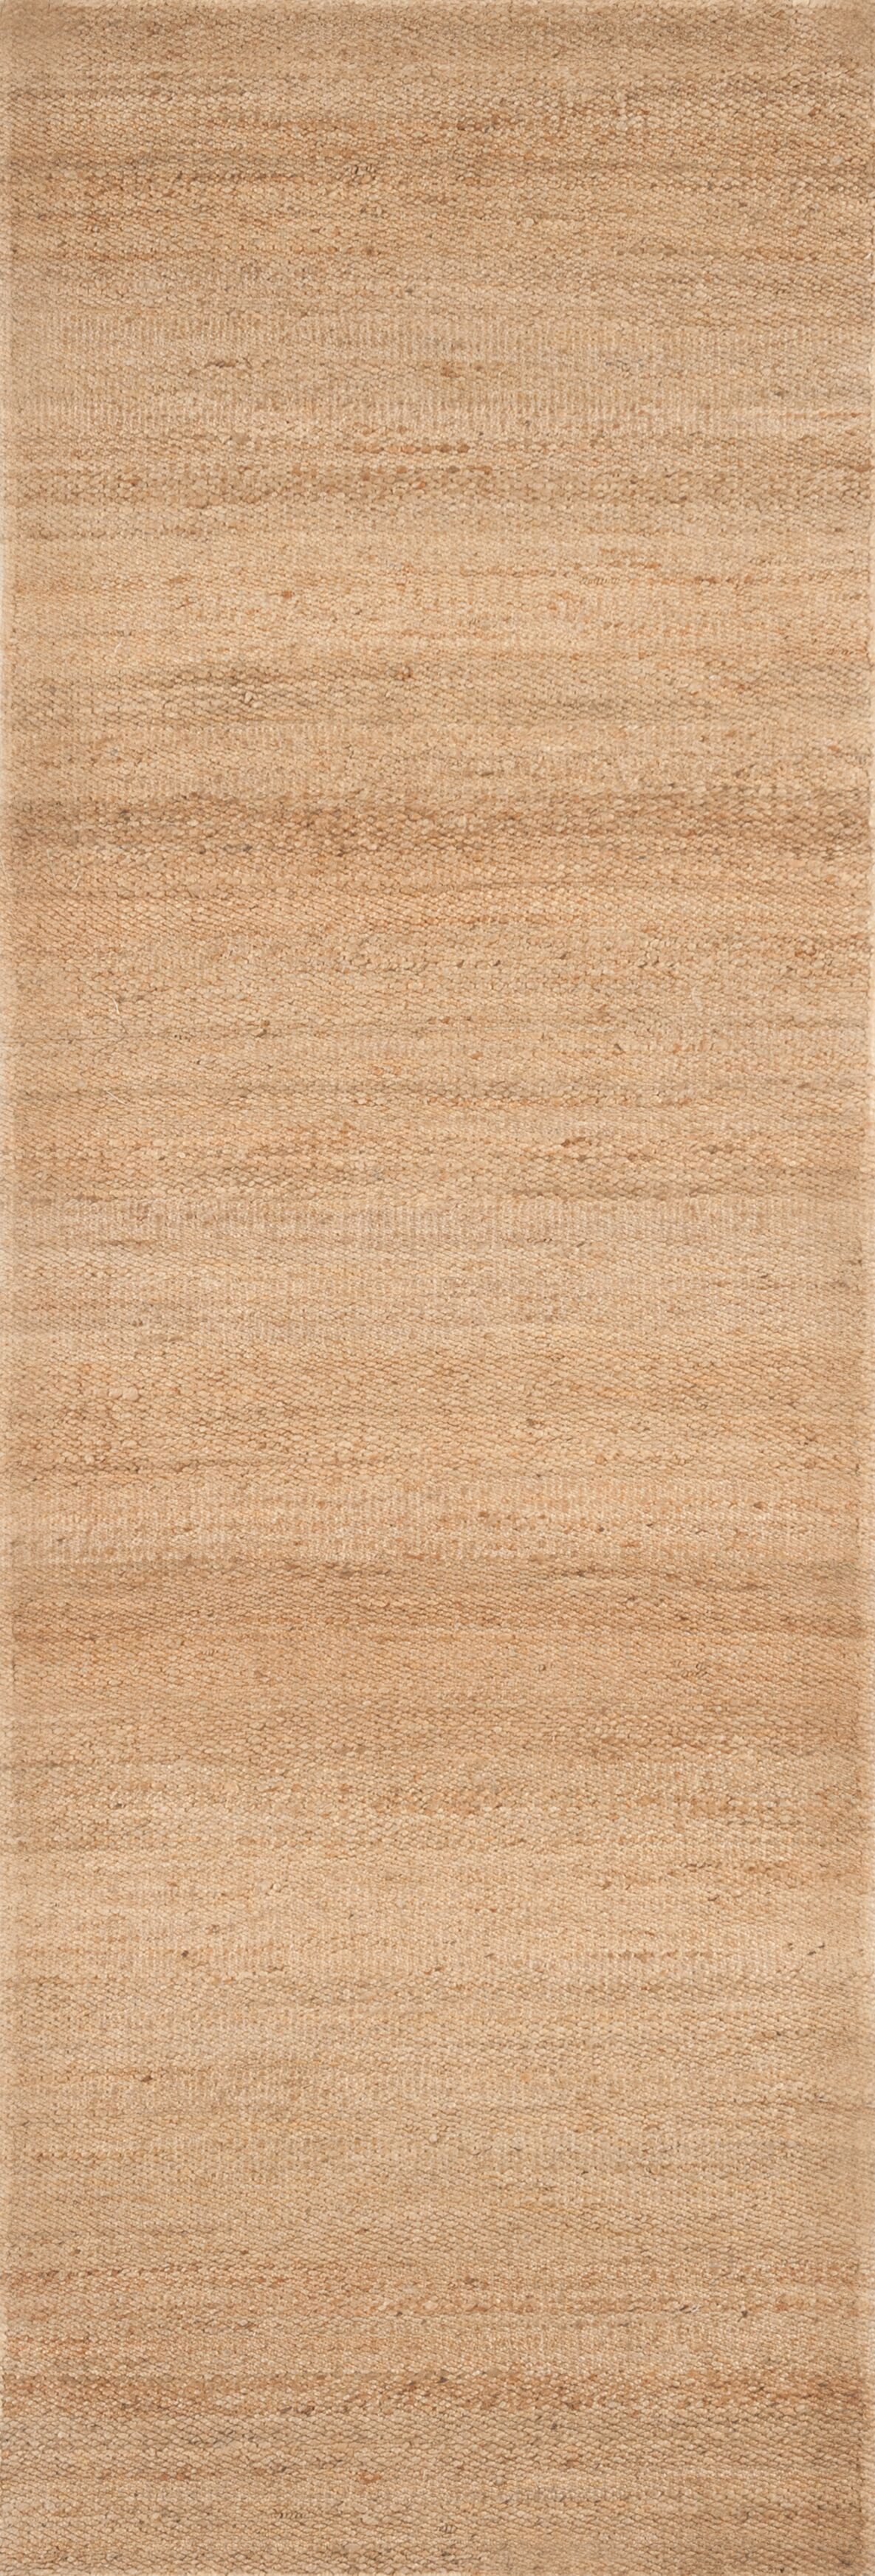 Hand-Woven Natural Area Rug Rug Size: Rectangle 8' x 10'